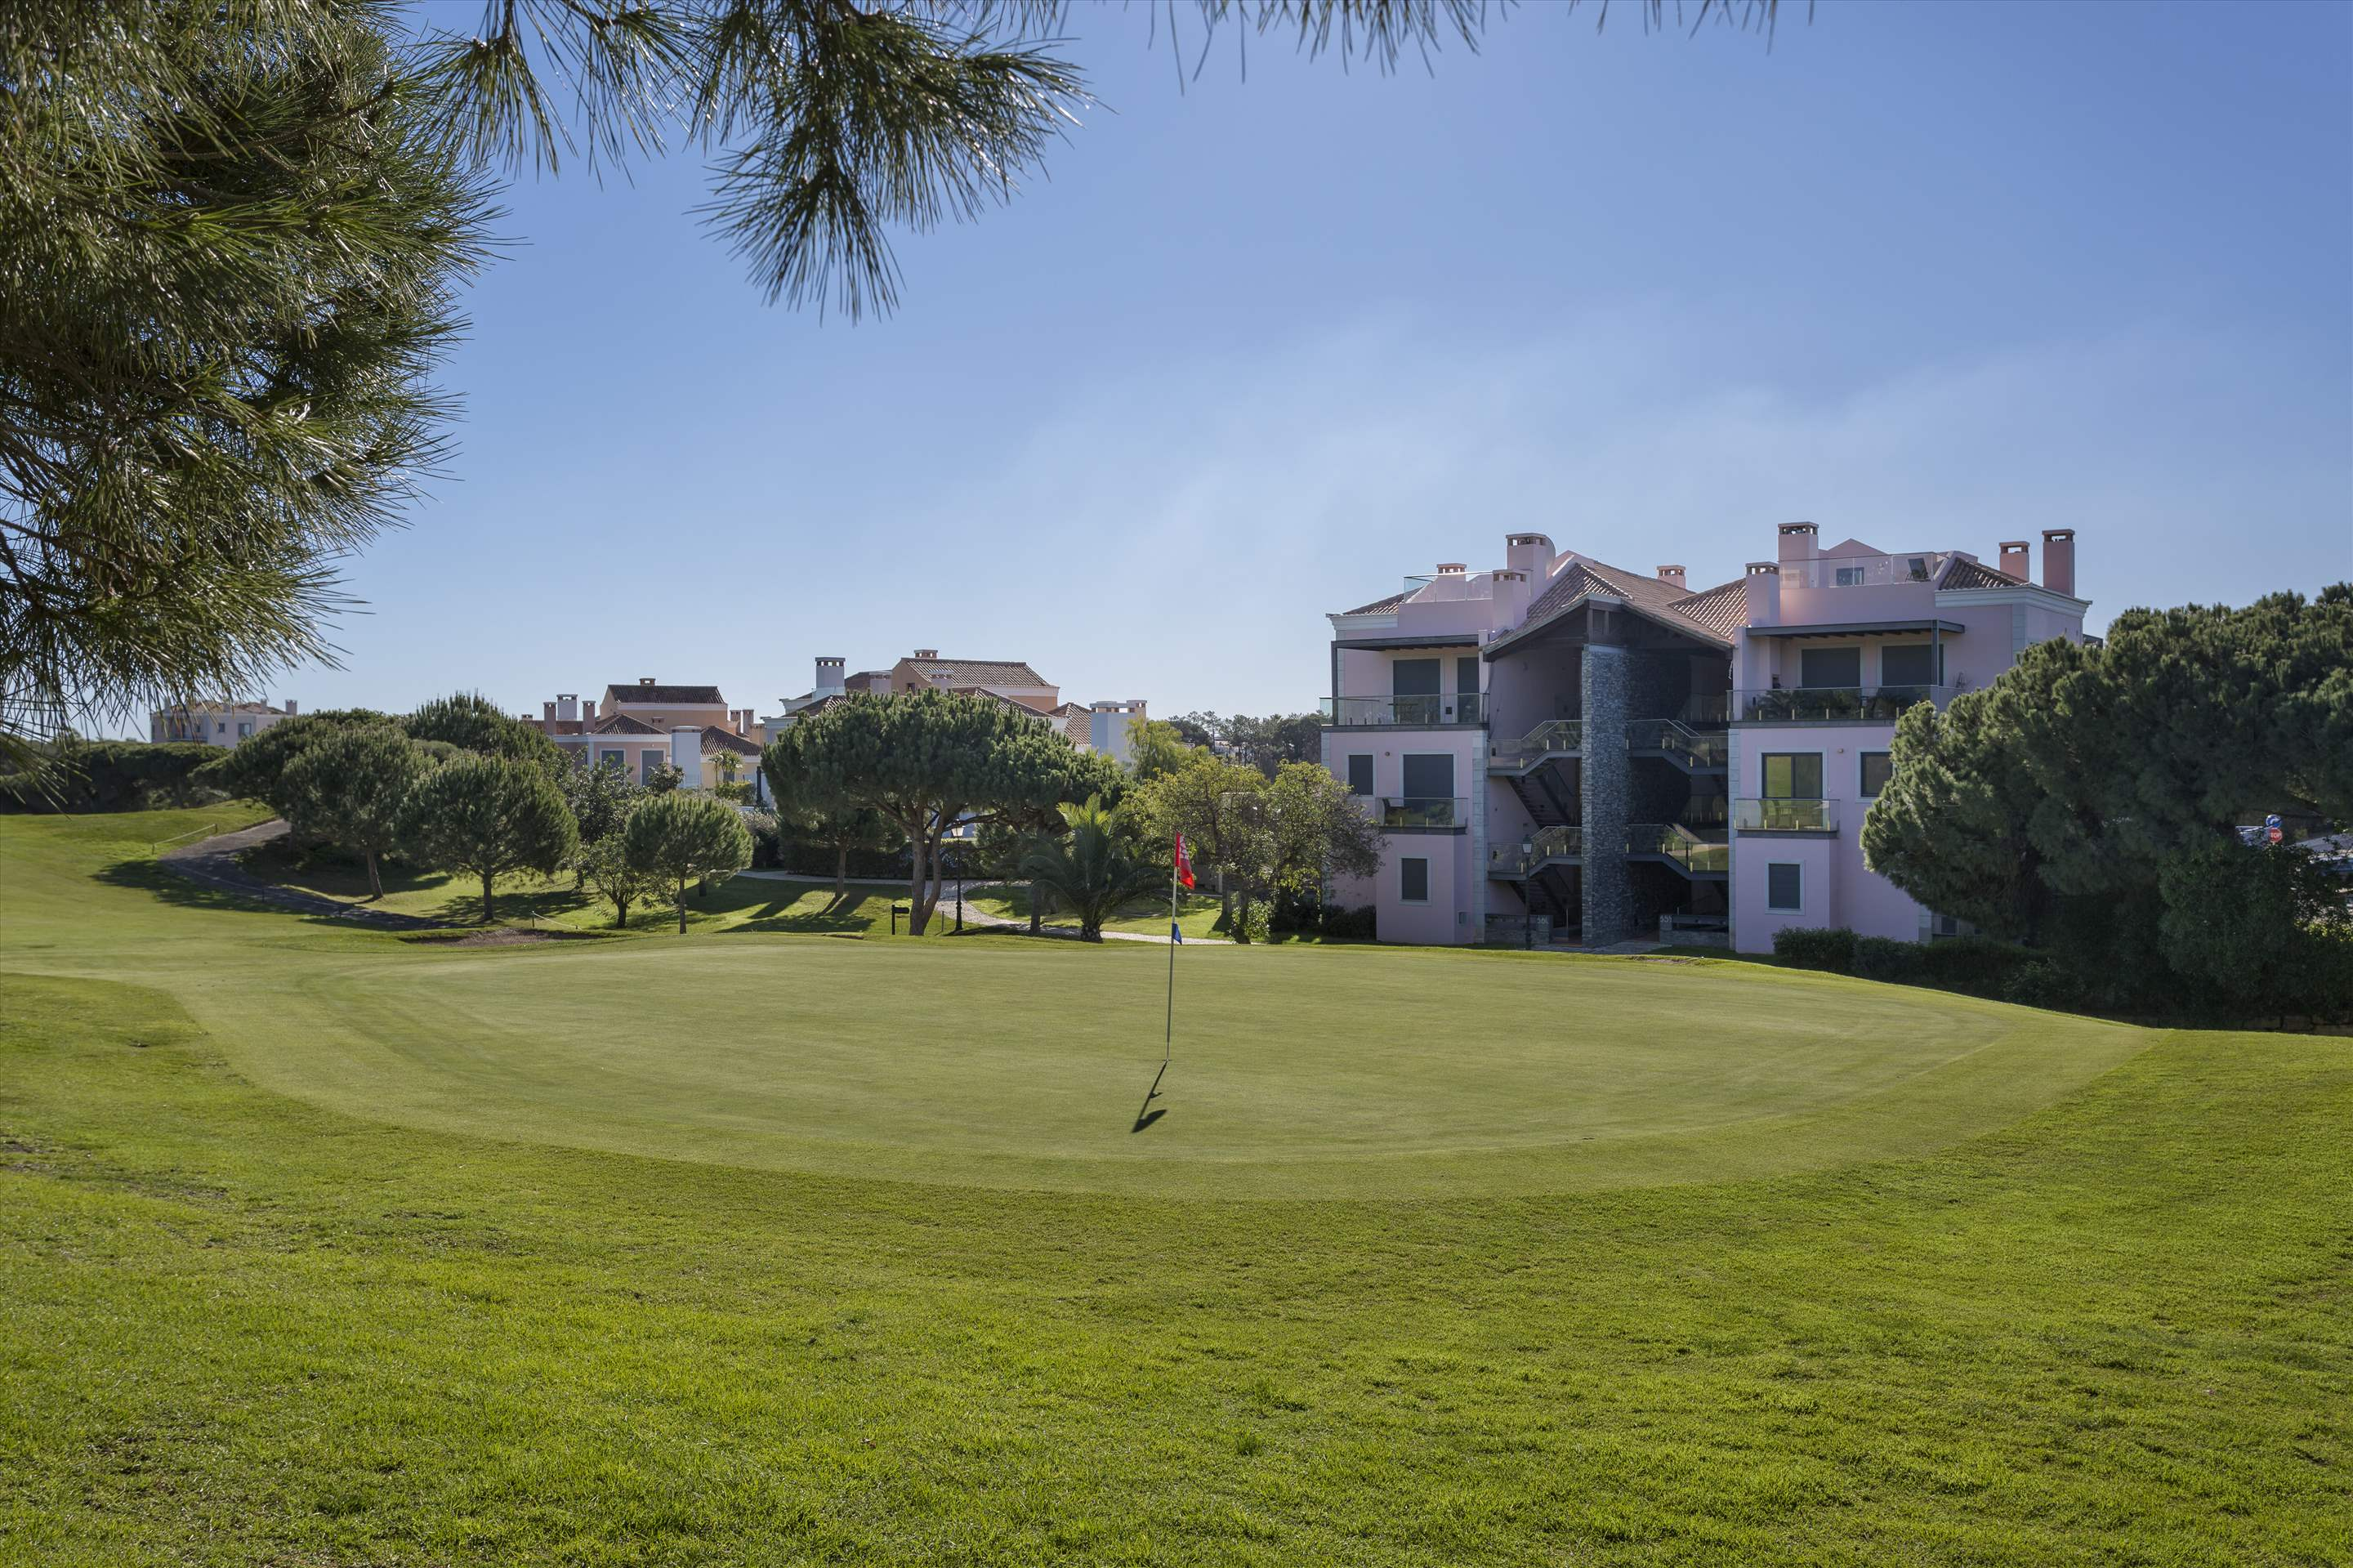 Apartment Alexandra, 2 bedroom apartment in Vale do Lobo, Algarve Photo #8